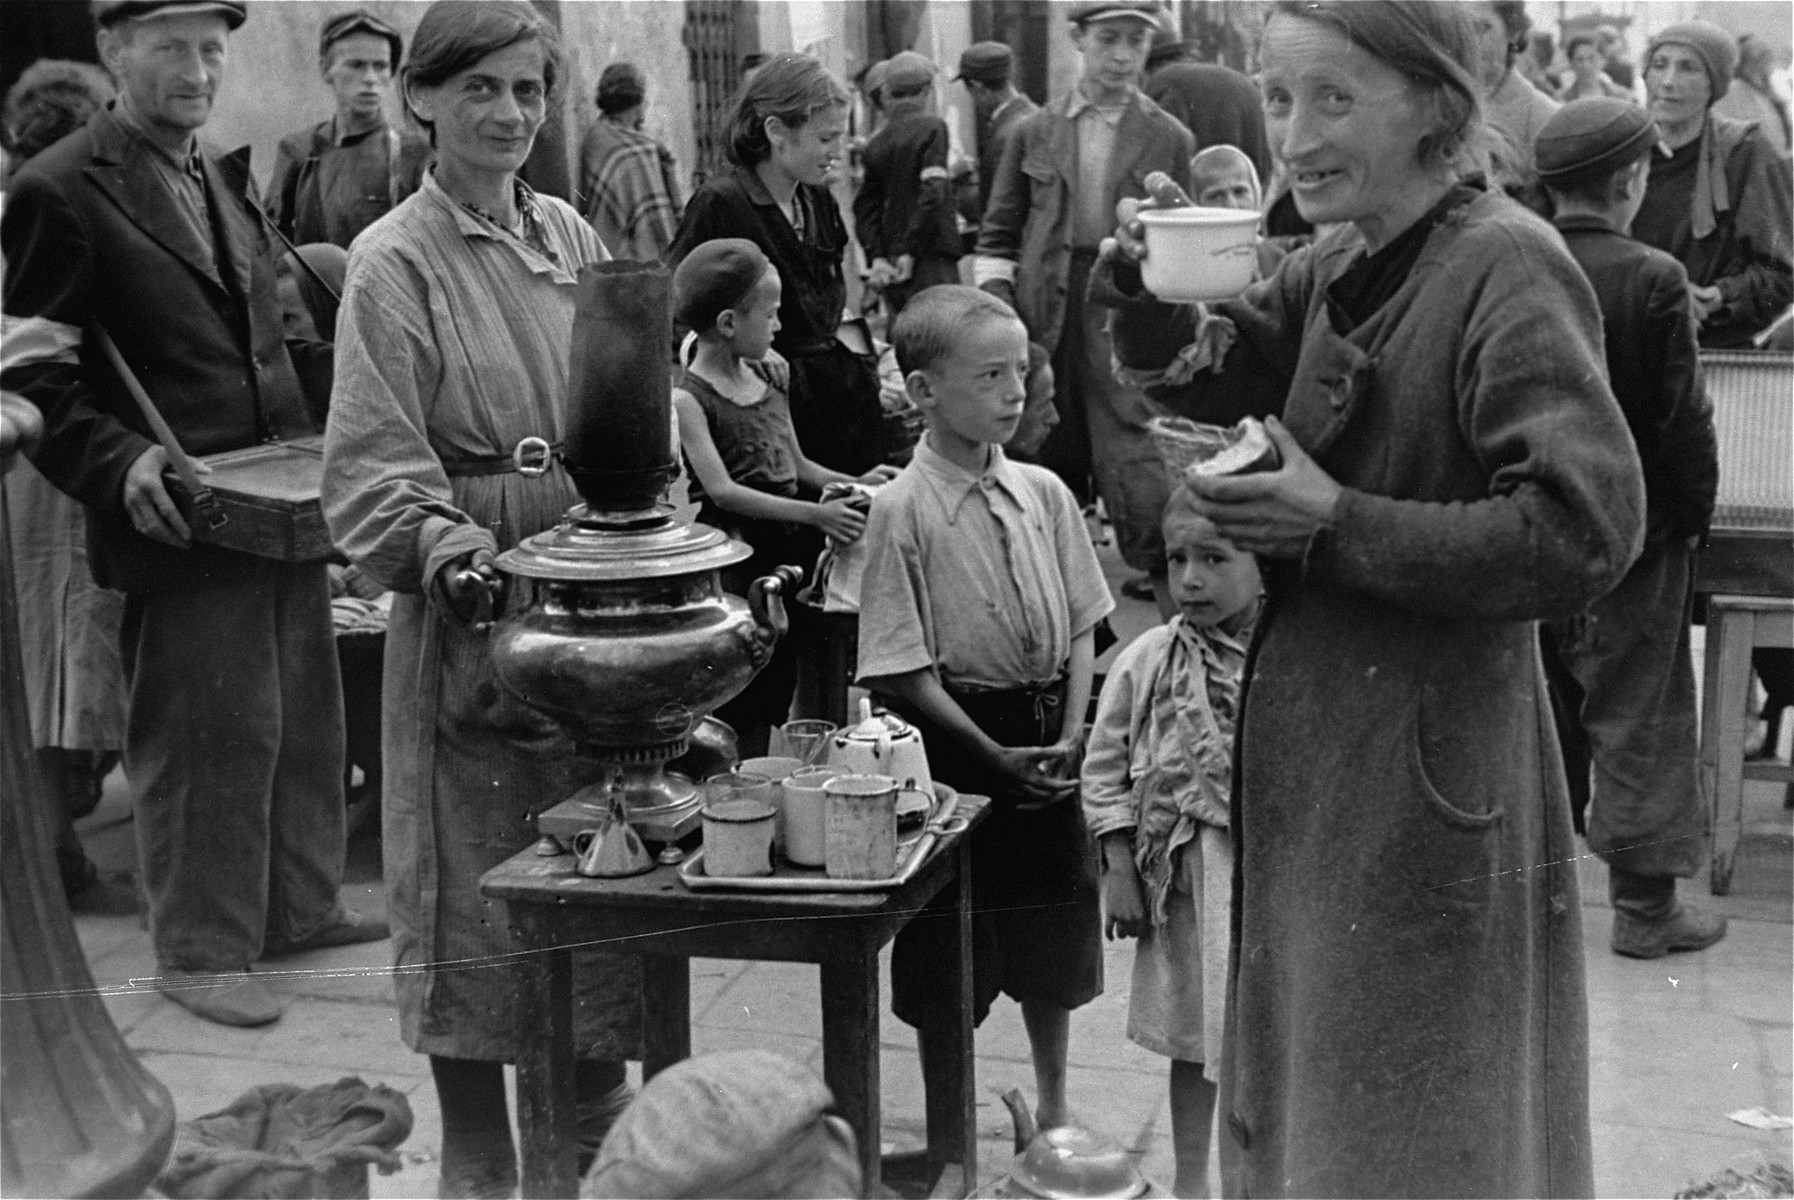 A woman drinks a cup of tea and eats a piece of bread she purchased from a vendor at an open air market in the Warsaw ghetto.